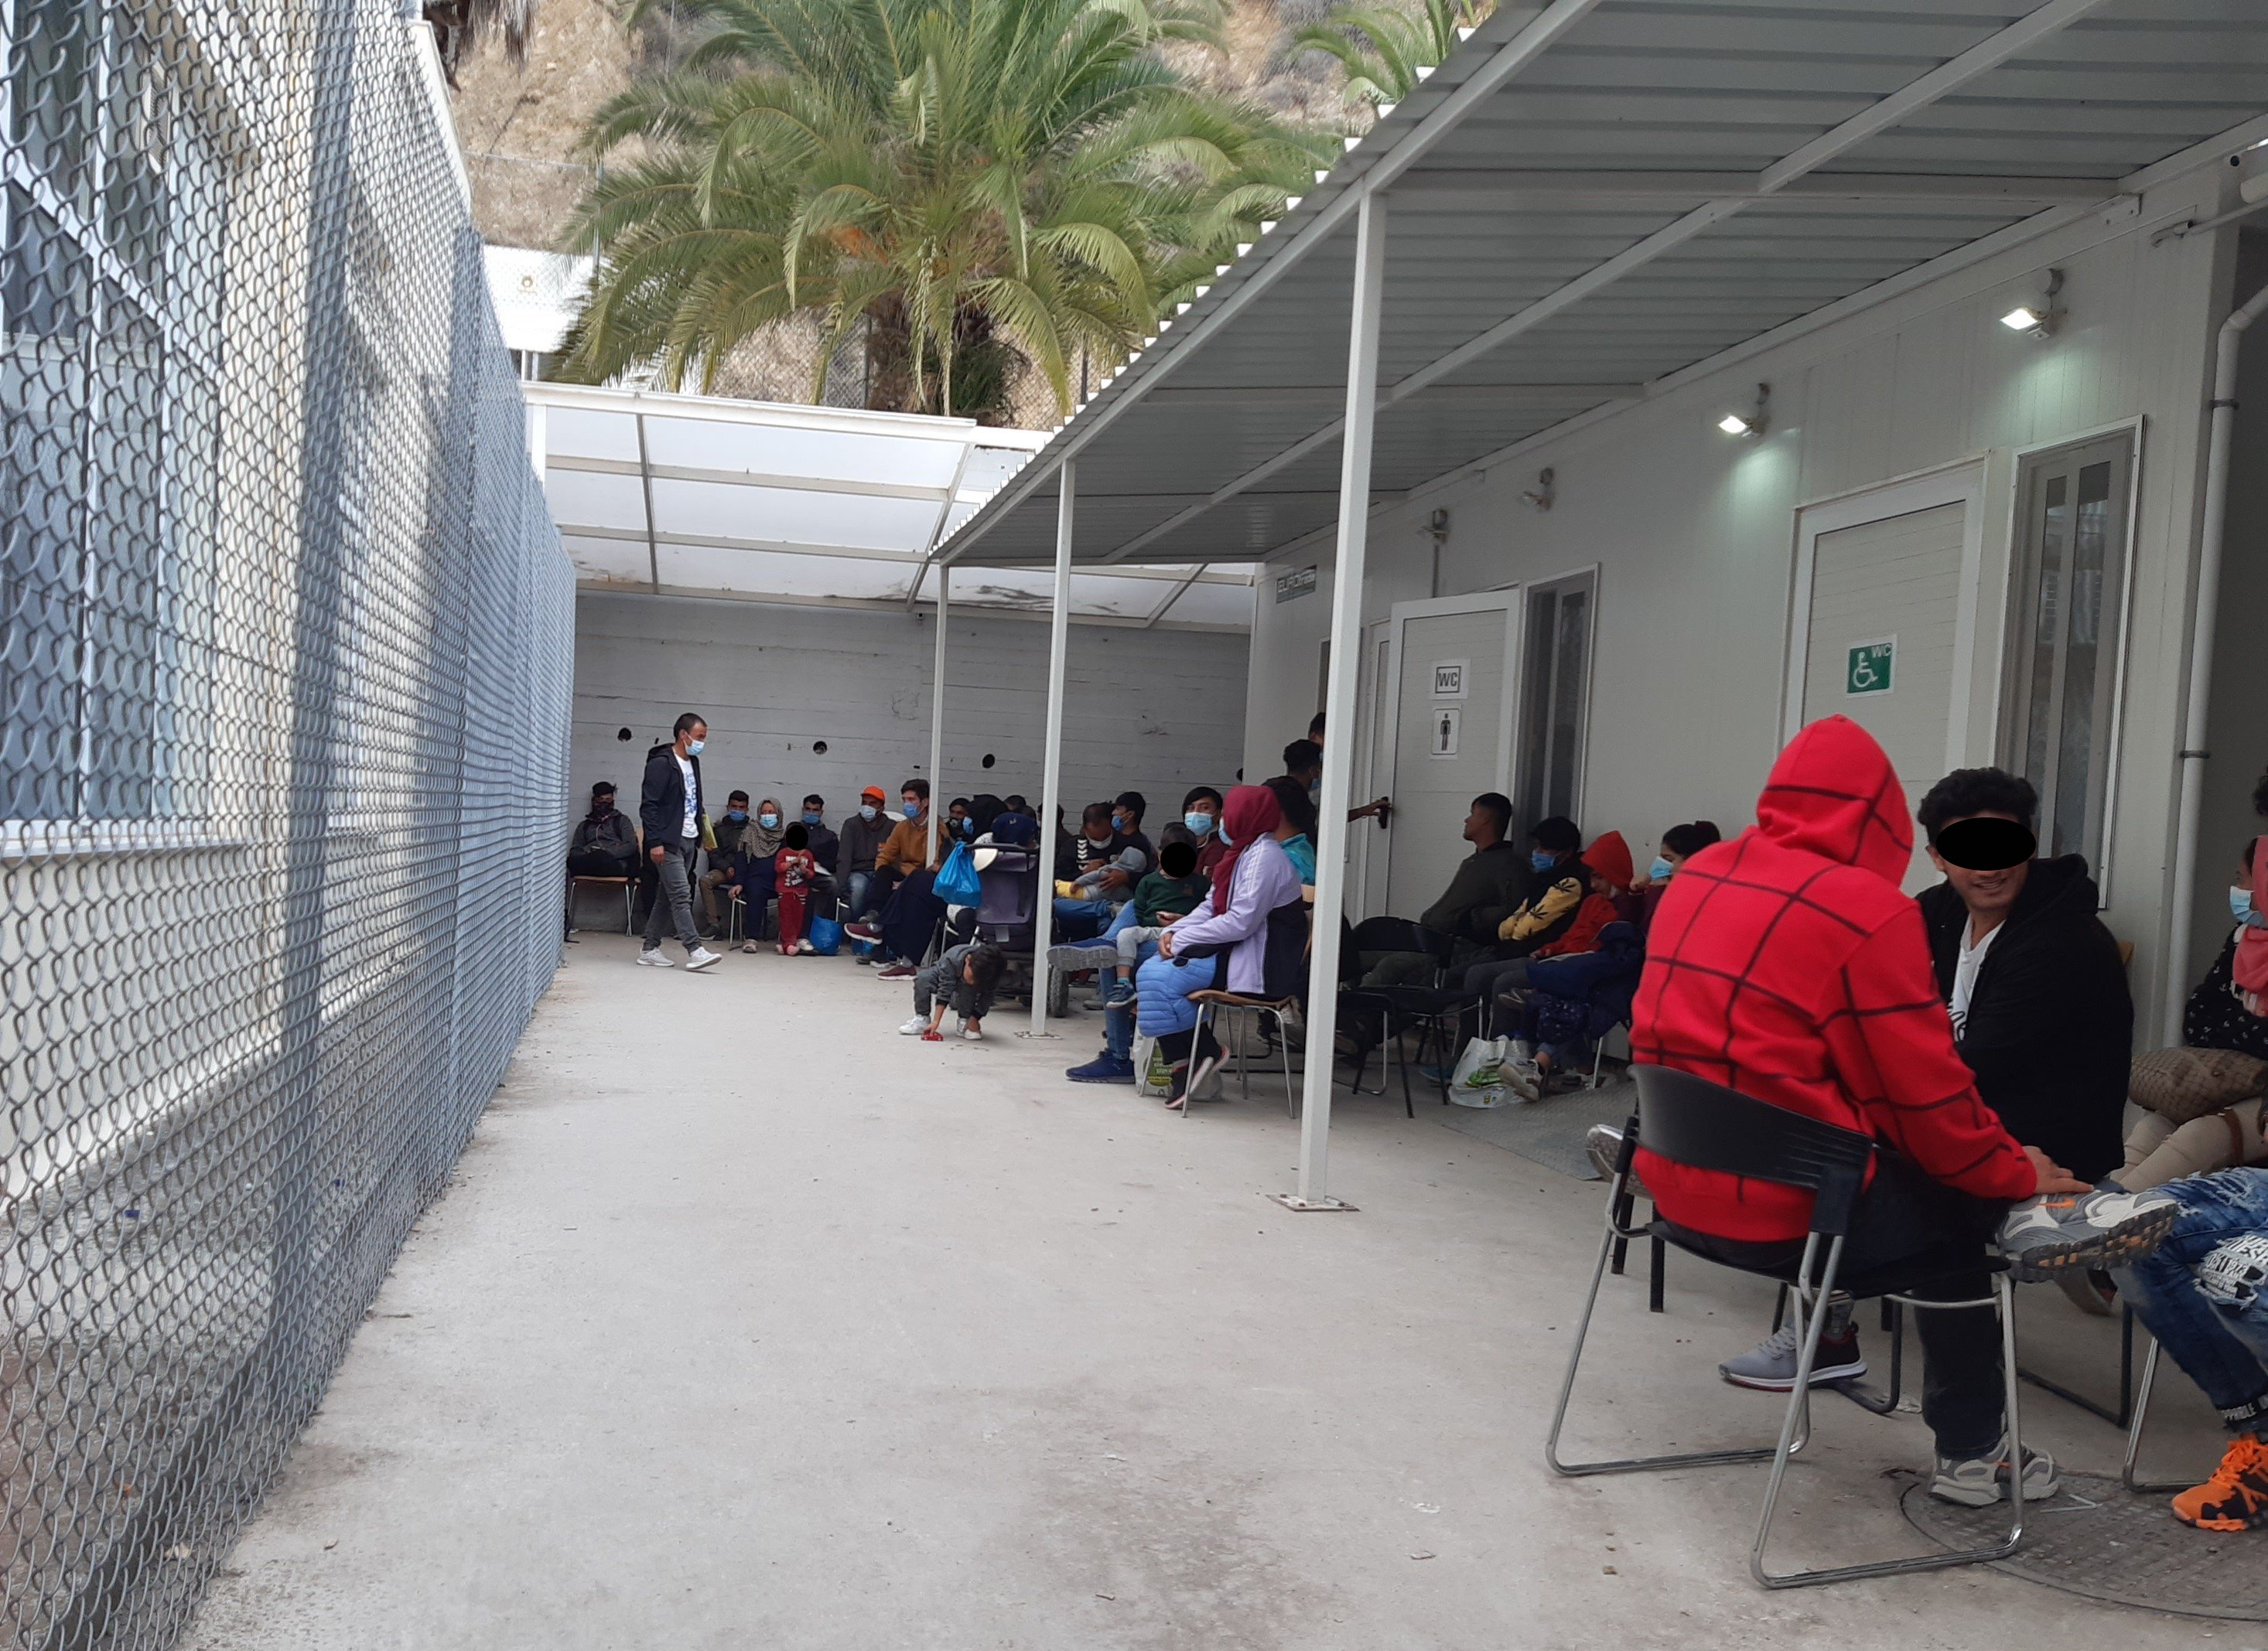 WHILE EUROPE STRUGGLES WITH SECOND WAVE OF COVID-19 INFECTIONS, GREECE RUSHES ASYLUM SEEKERS THROUGH PROCEDURES IN LESVOS